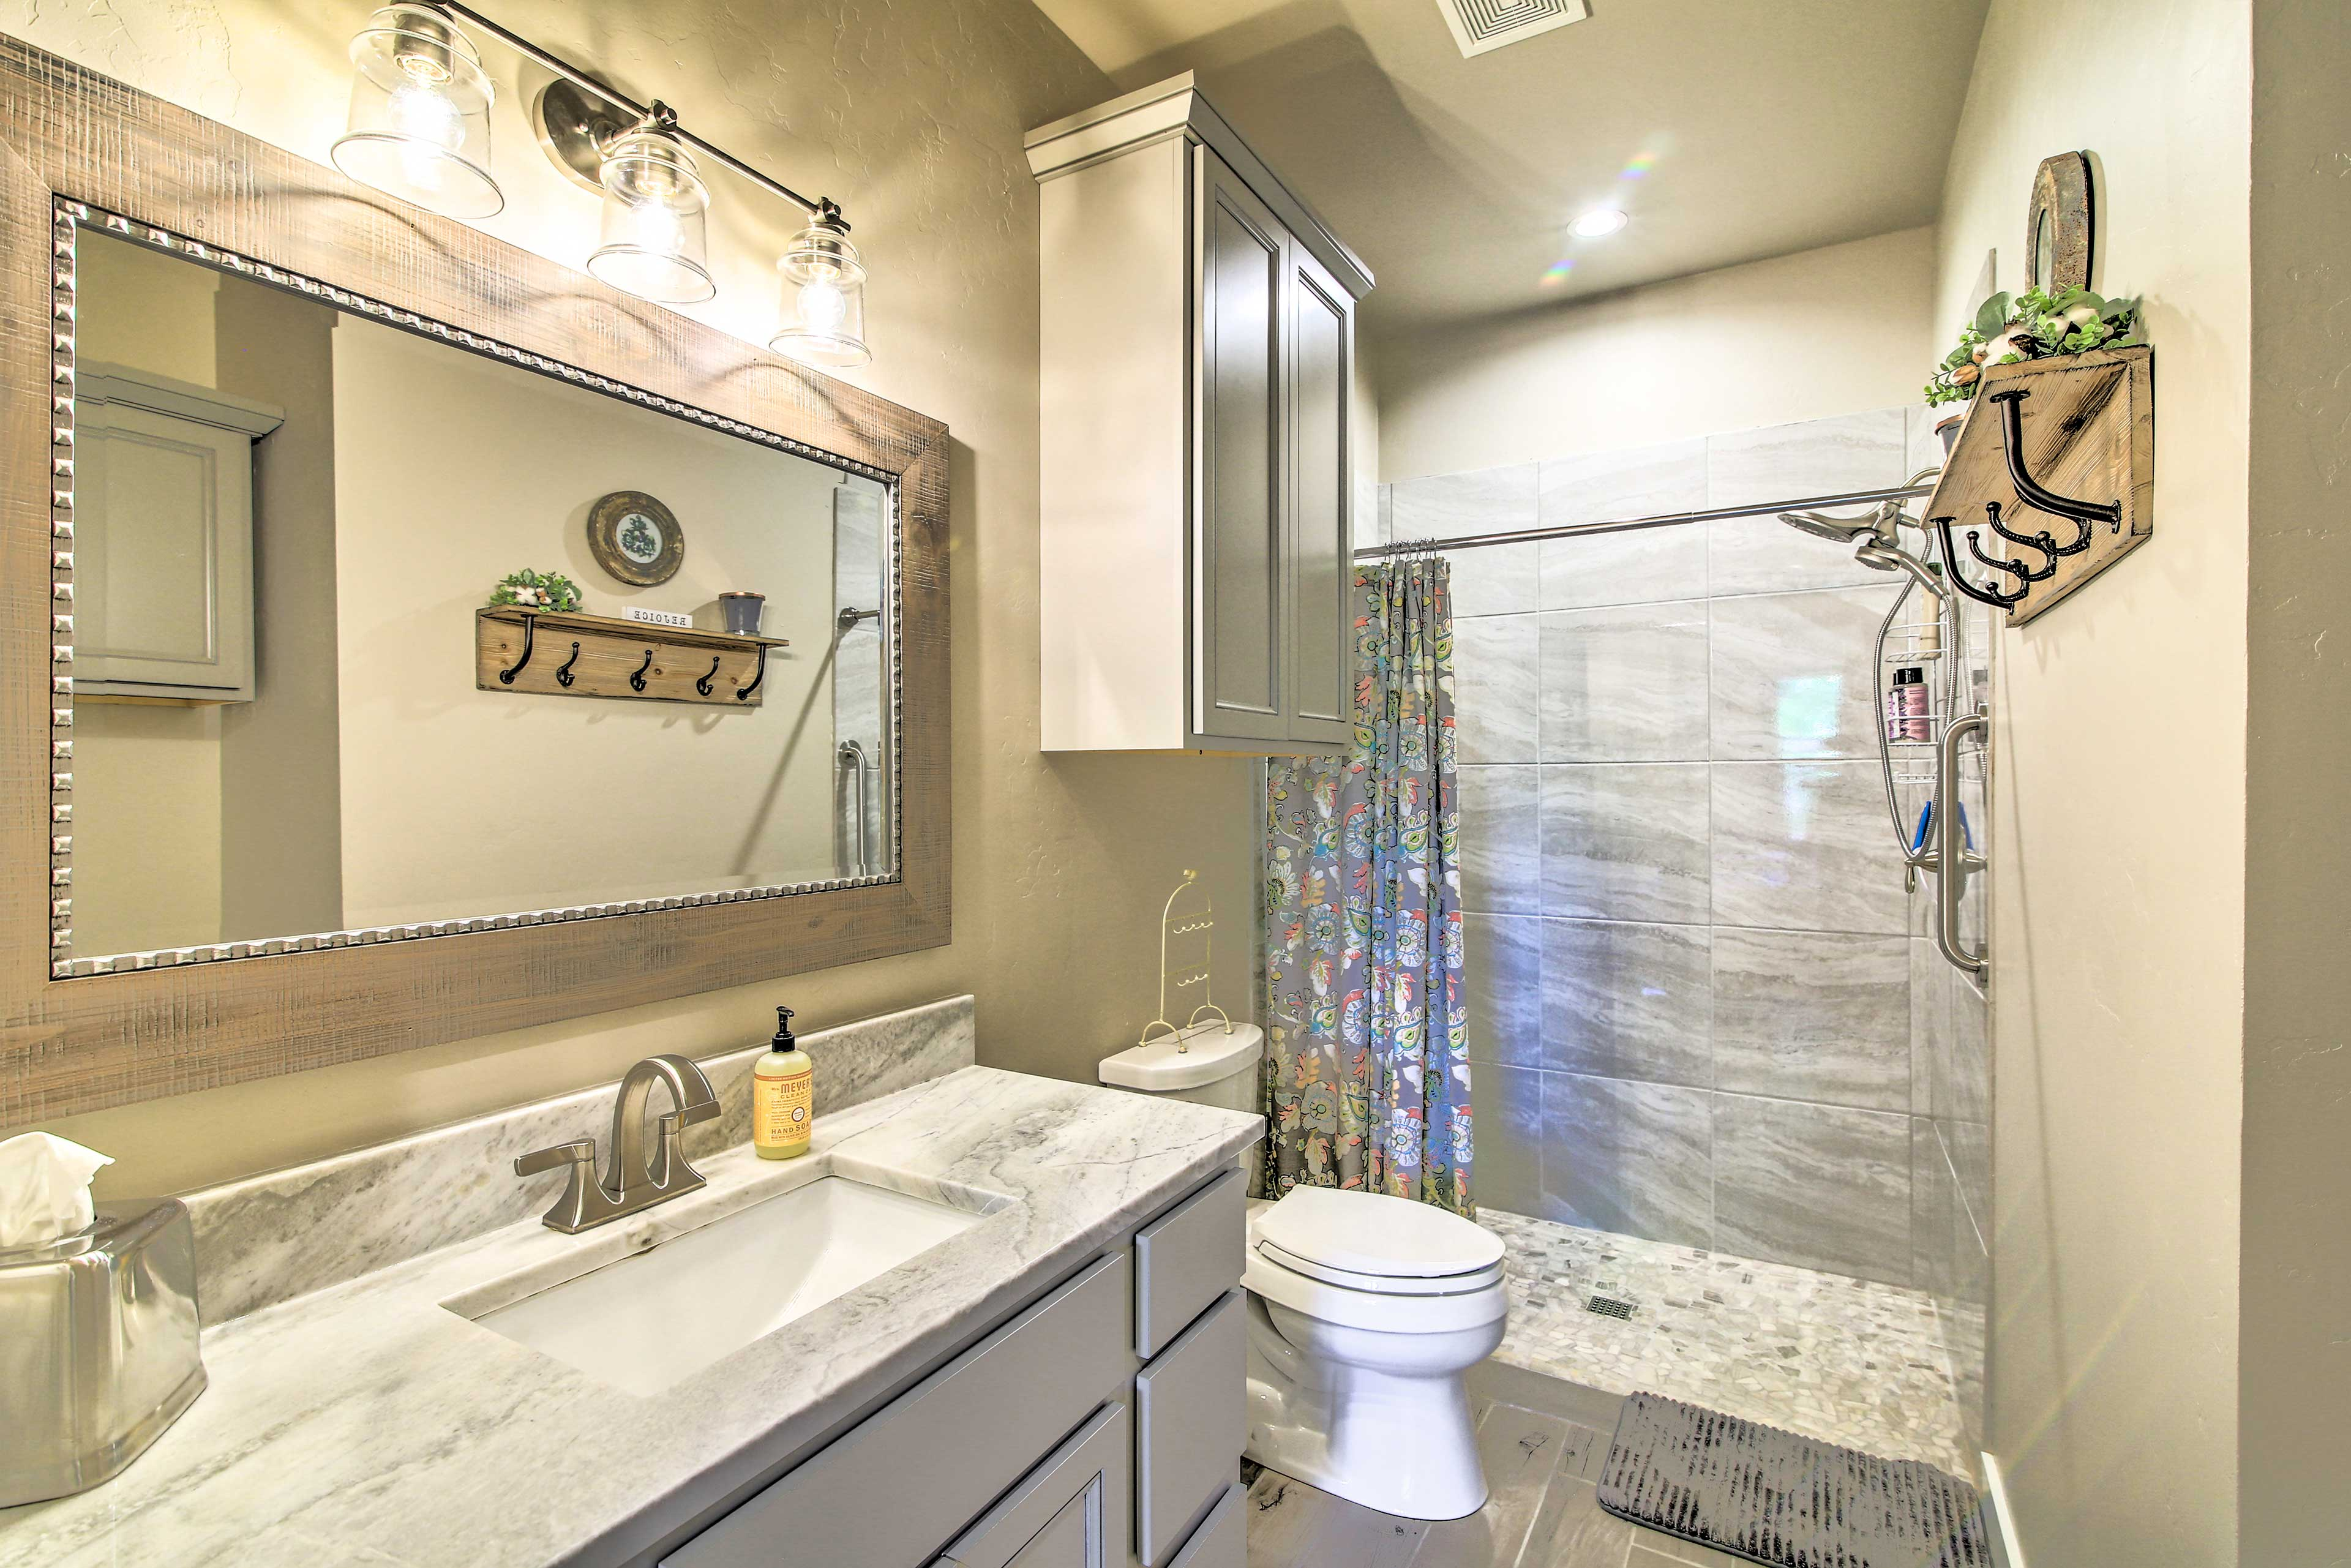 The luxurious bathroom boasts a step-in shower.